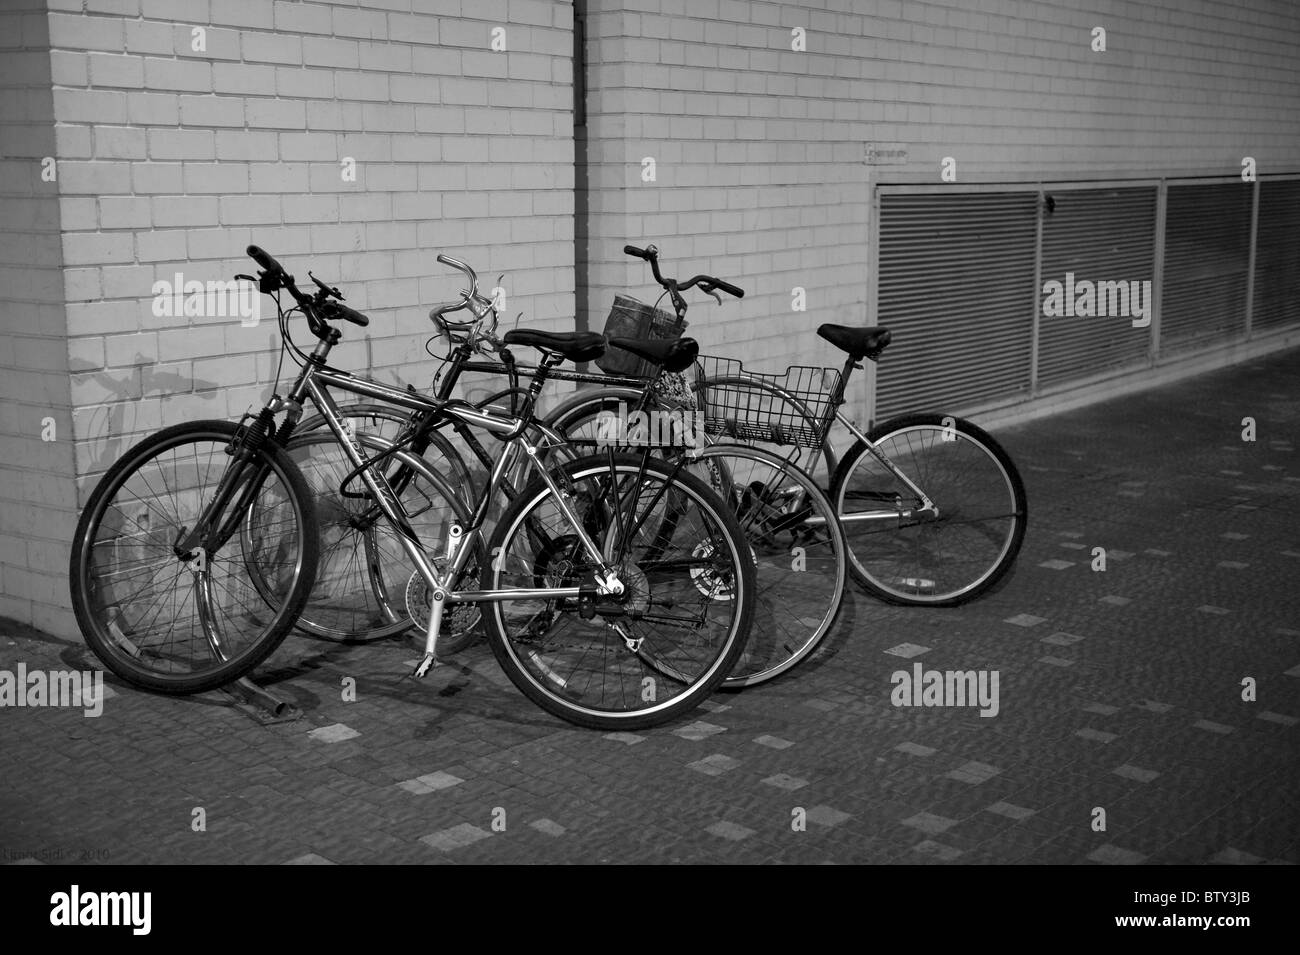 Bicycles at Tel-Aviv harbor - Stock Image